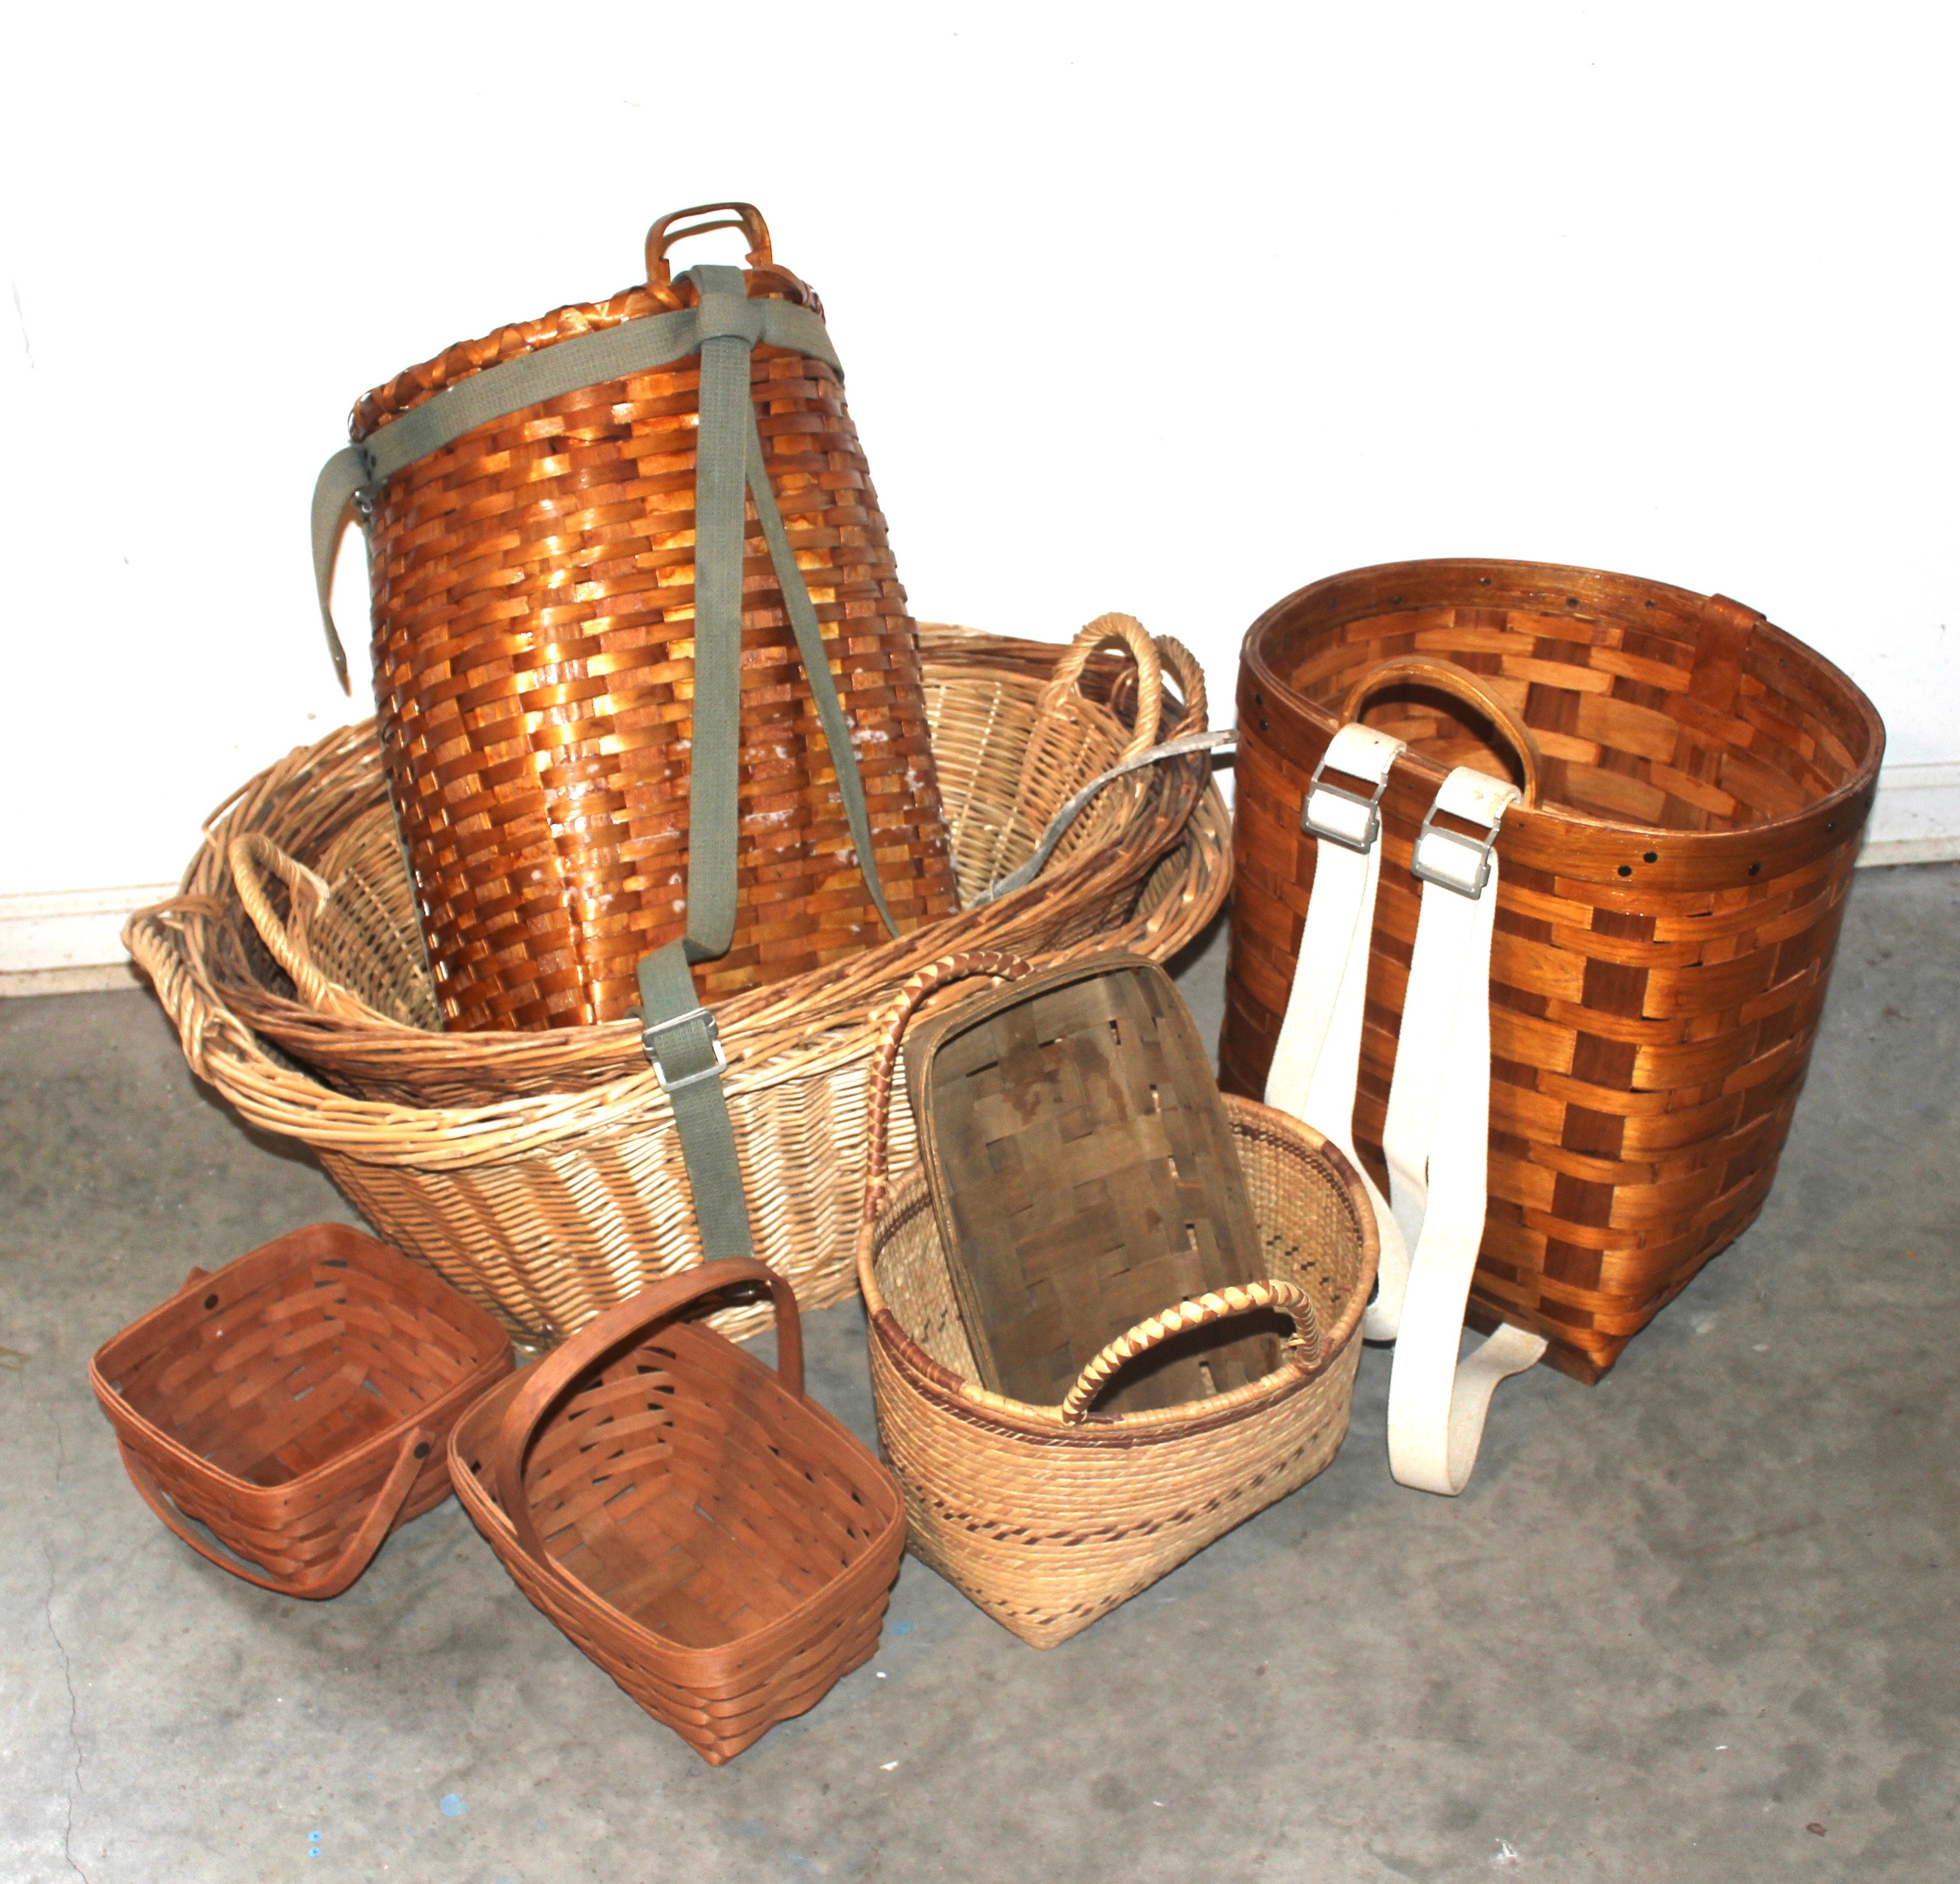 Handled Baskets and Pack Baskets Including Longaberger